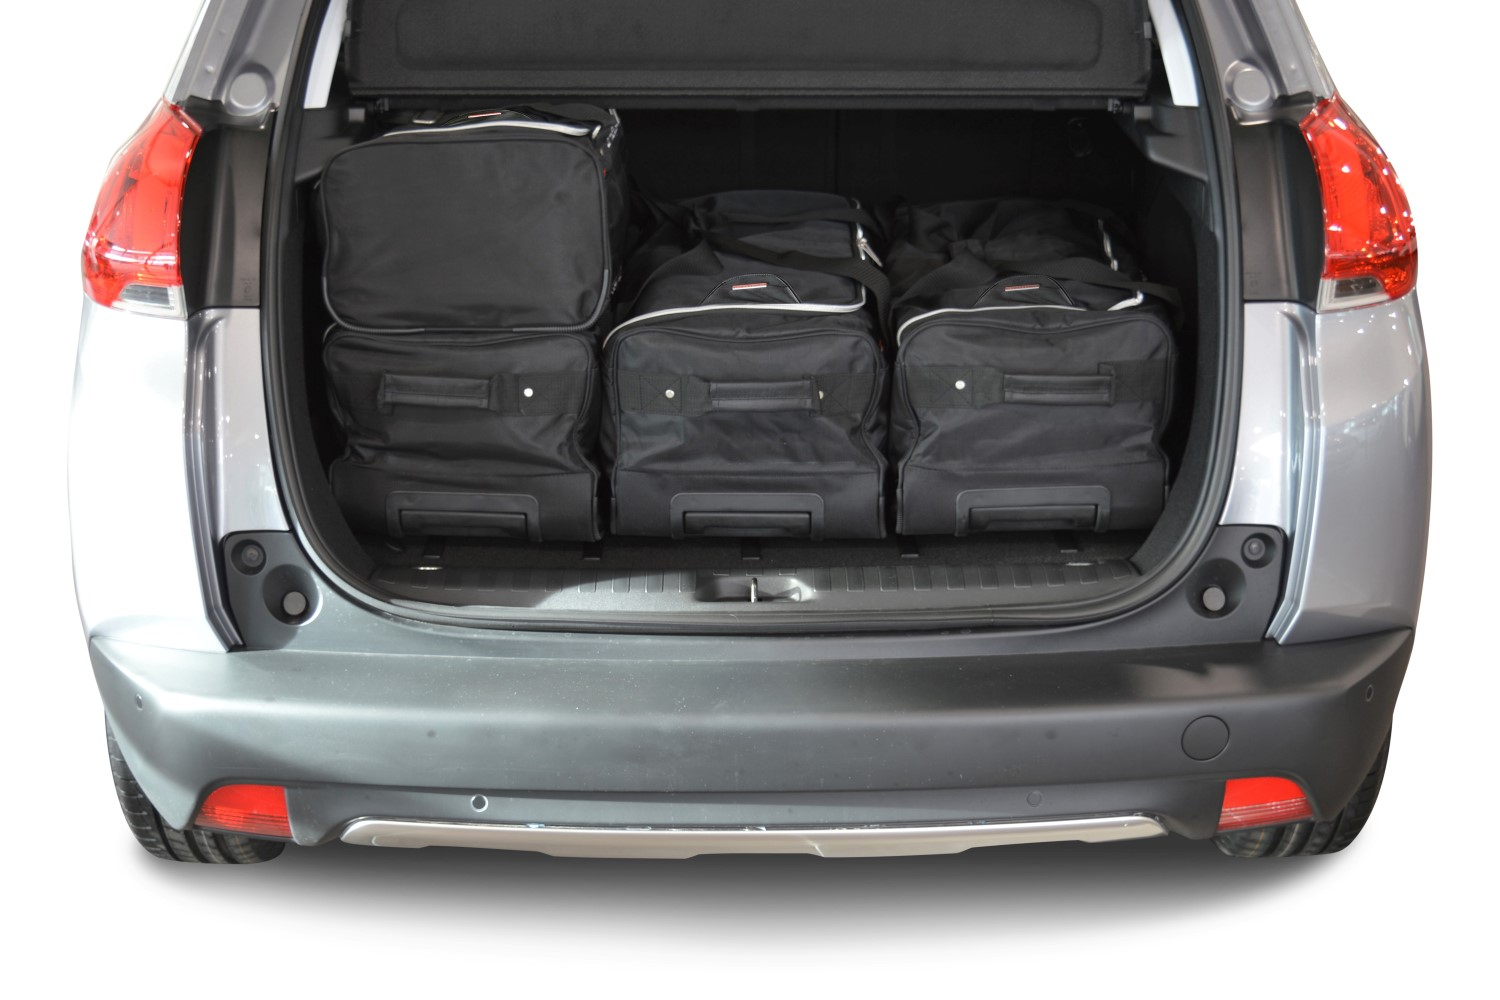 Peugeot 2008 2014-present Car-Bags travel bags